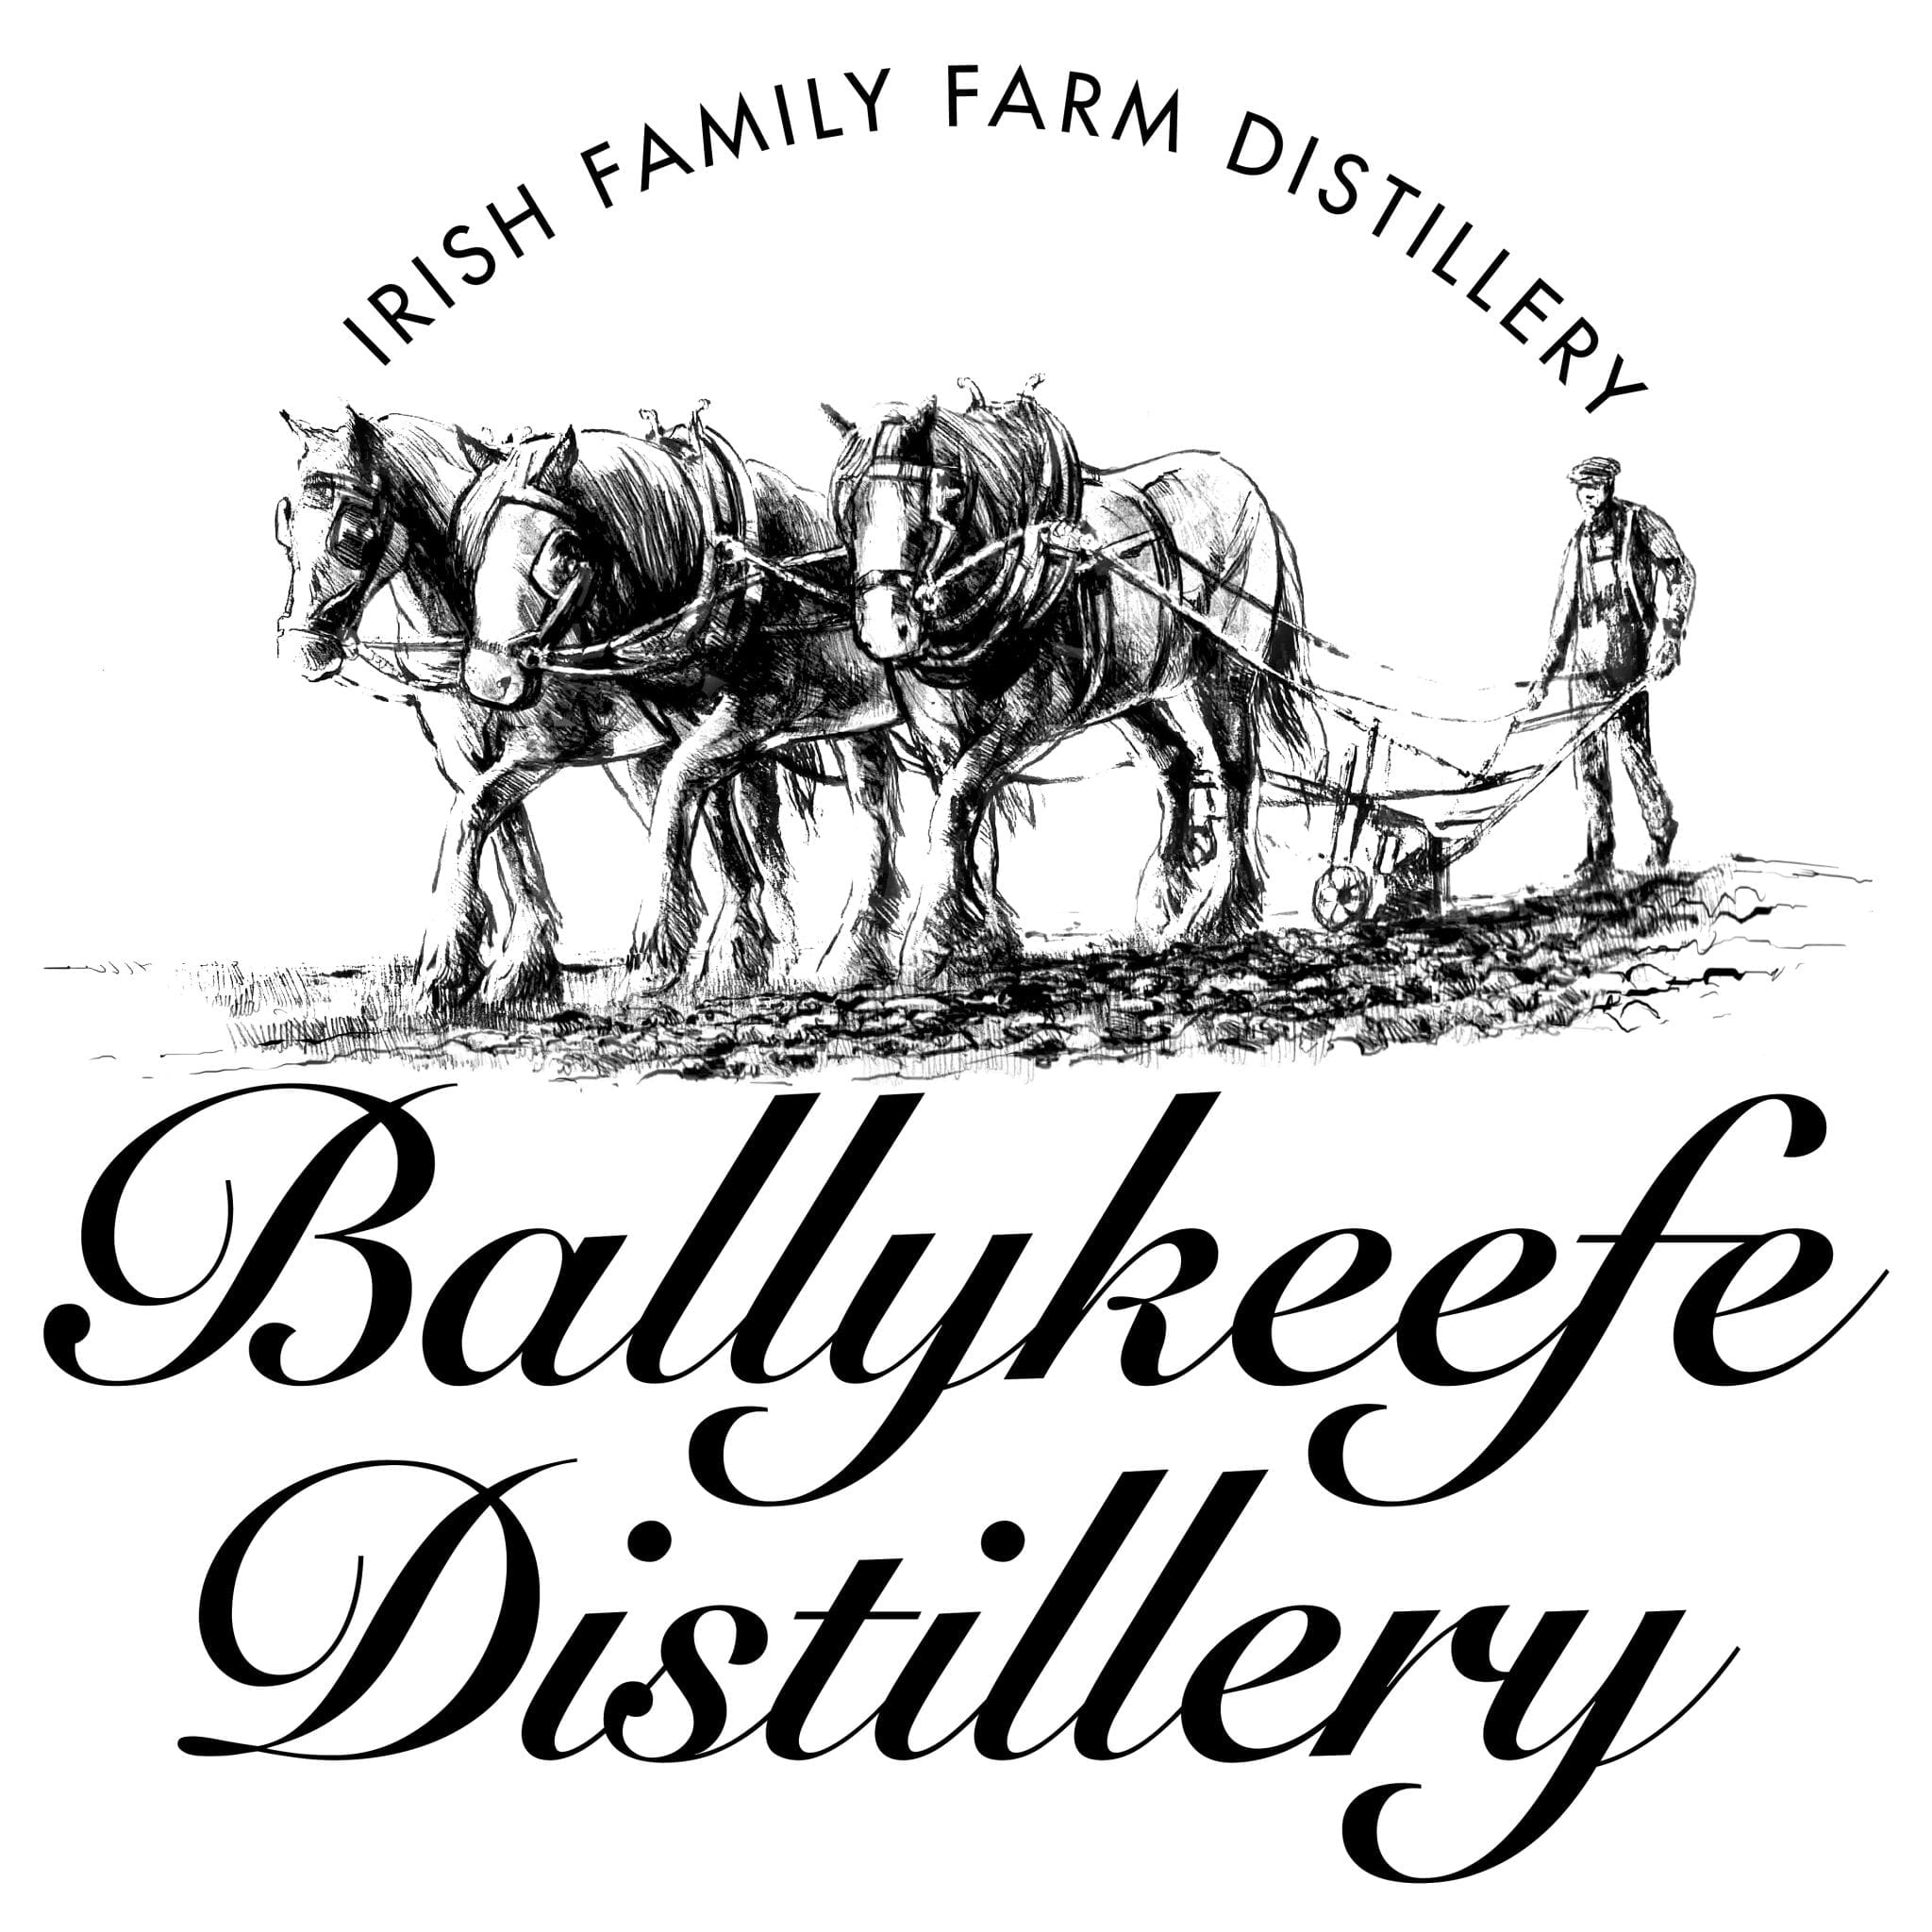 Ballykeefe Irish Family Farm Distillery Irish Whiskey Blogger Stuart McNamara